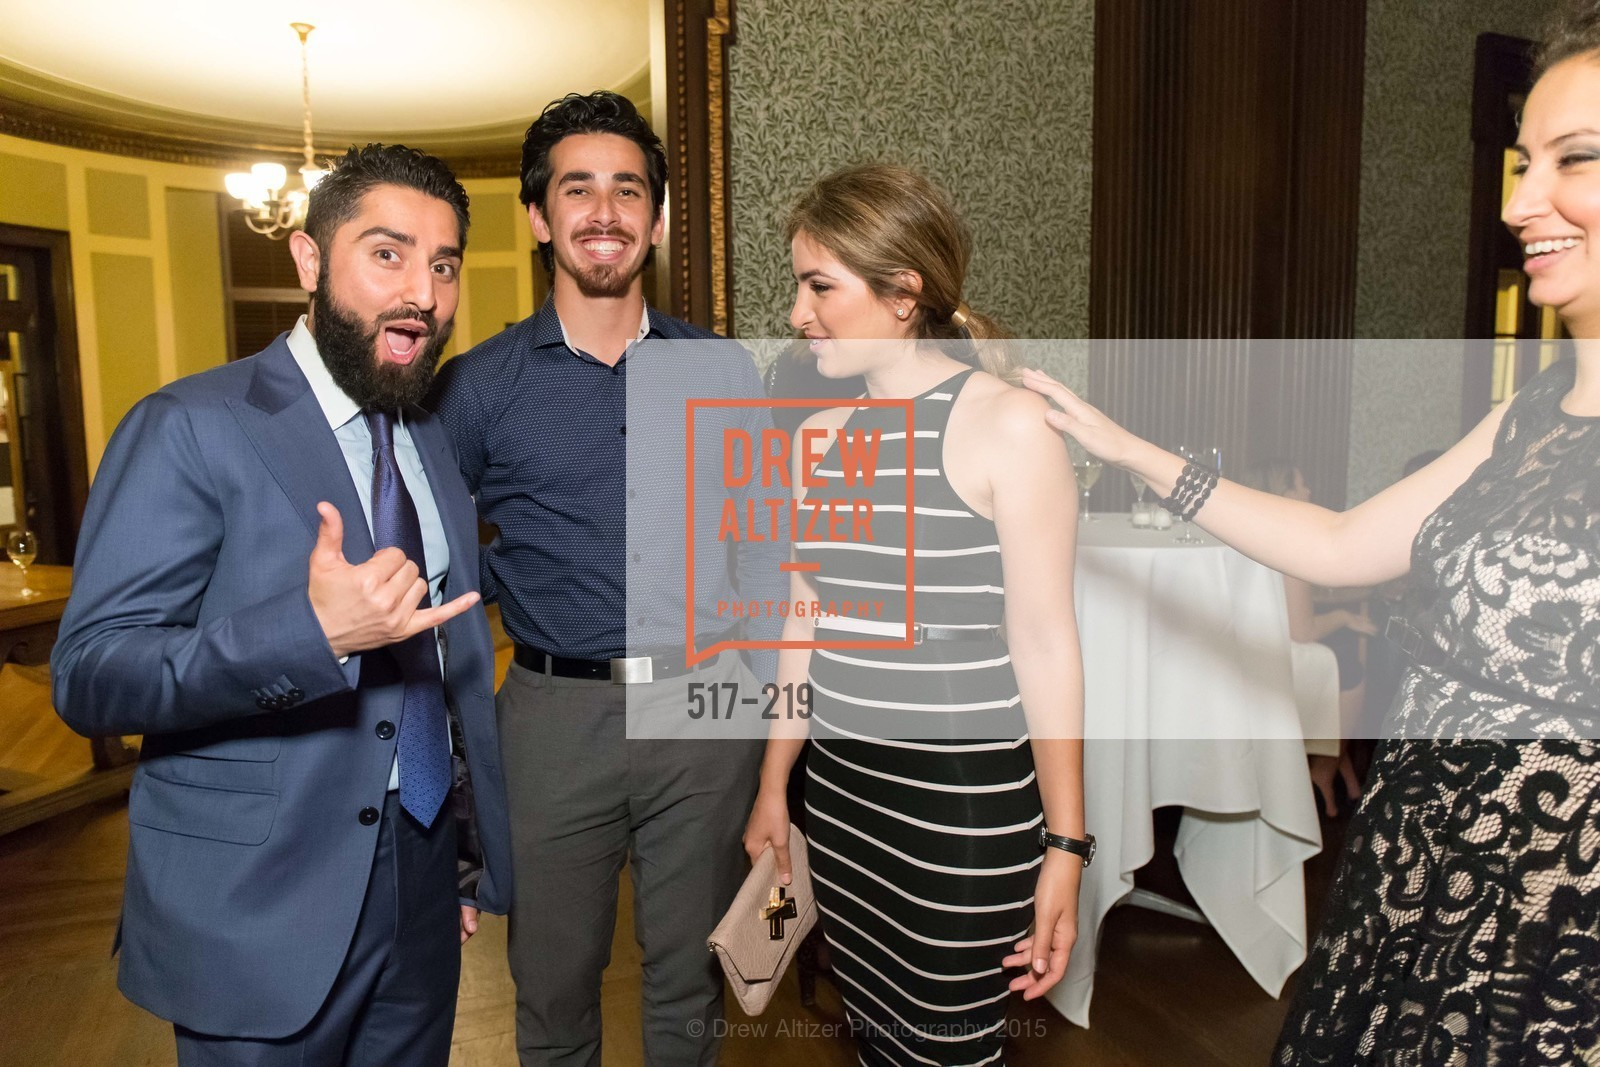 Roh Habibi, Omar Kohgadai, Shugufa Habibi, Fatima Lavour, Champagne Reception & Screening of Million Dollar Listing San Francisco, University Club. 800 Powell St, August 5th, 2015,Drew Altizer, Drew Altizer Photography, full-service agency, private events, San Francisco photographer, photographer california